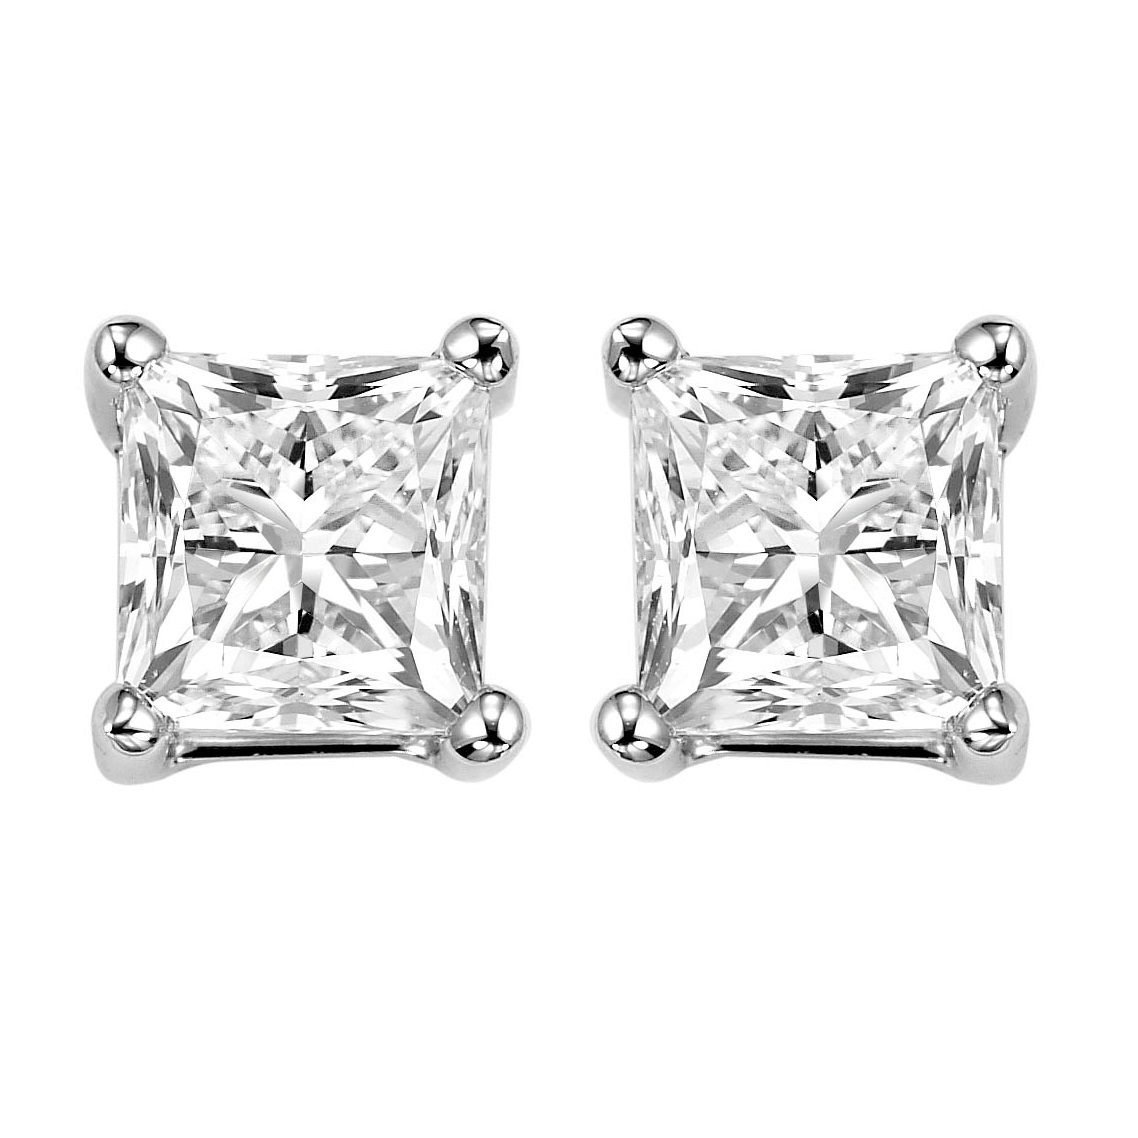 Princess Cut Diamond Studs in 14K White Gold (1 1/2 ct. tw.) SI2 - G/H Moseley Diamond Showcase Inc Columbia, SC